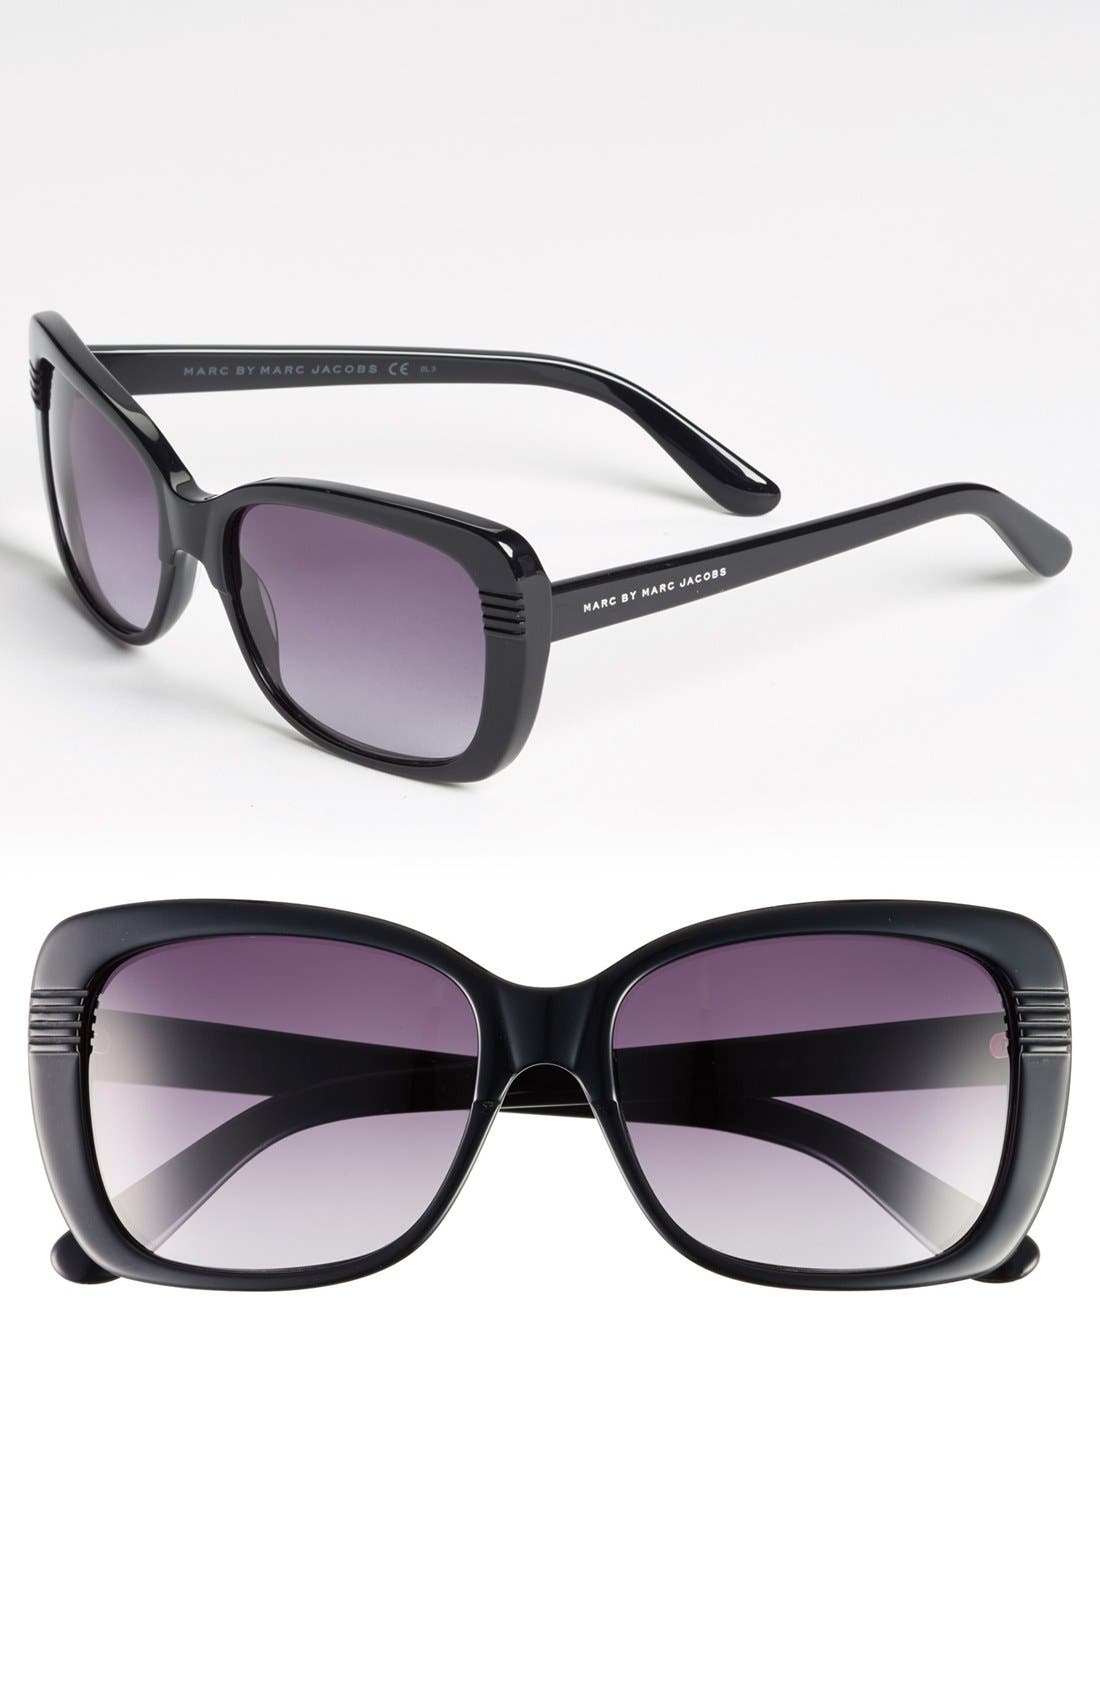 Main Image - MARC BY MARC JACOBS 56mm Sunglasses